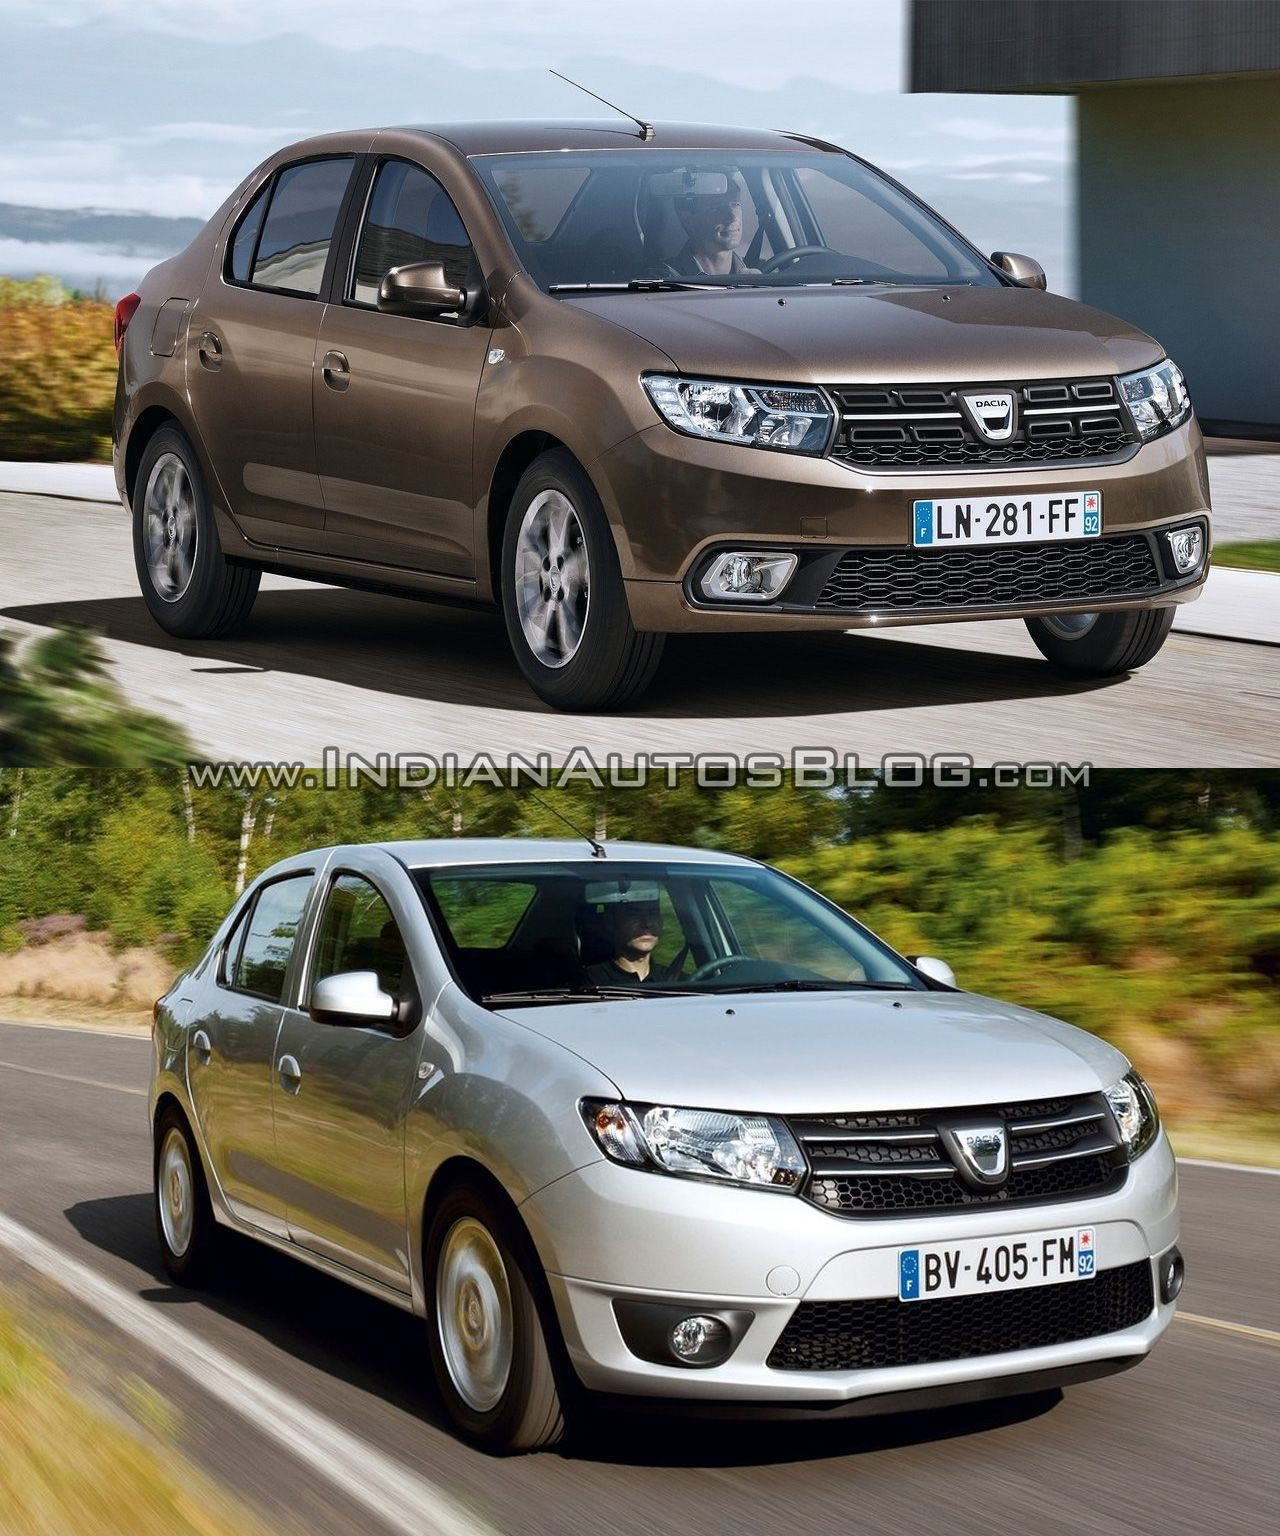 2017 dacia logan vs 2012 dacia logan old vs new cars daily dacia had unveiled a facelift for the dacia sandero dacia logan mcv and the dacia logan sedan sold in some markets at the 2016 paris motor show publicscrutiny Image collections